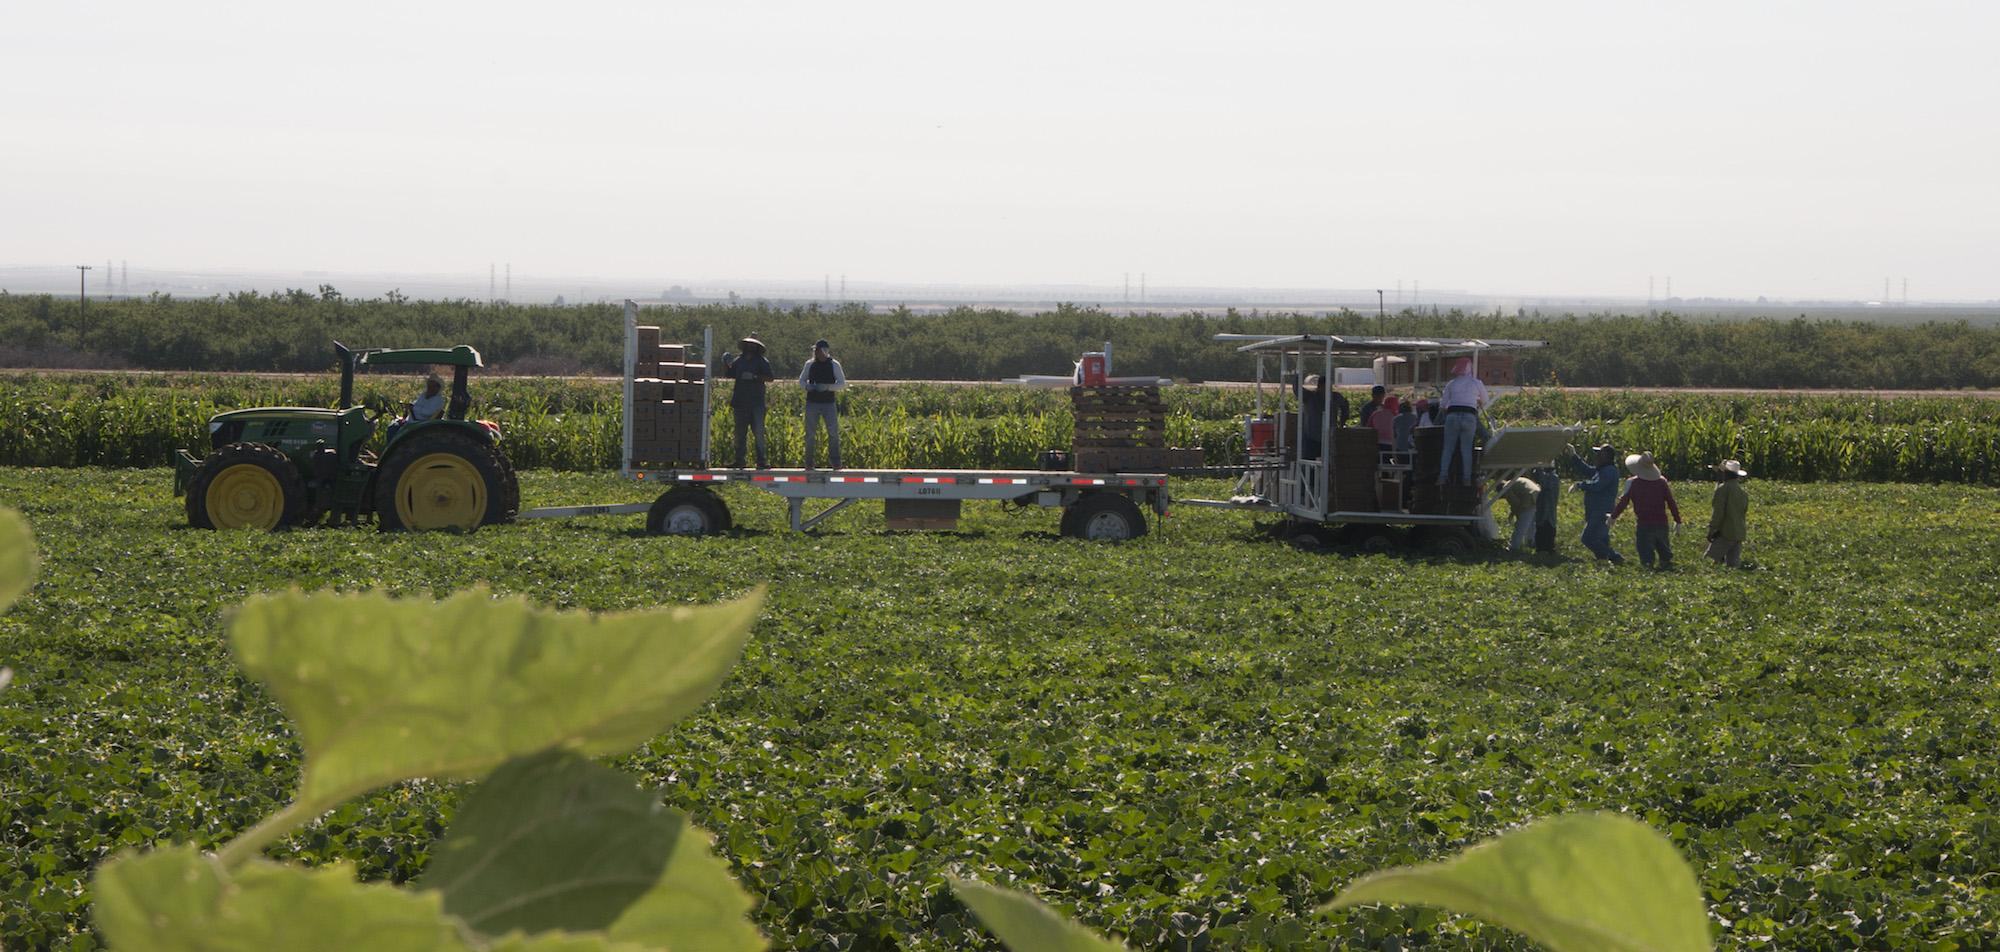 Harvesting melons at the Del Bosque Farms